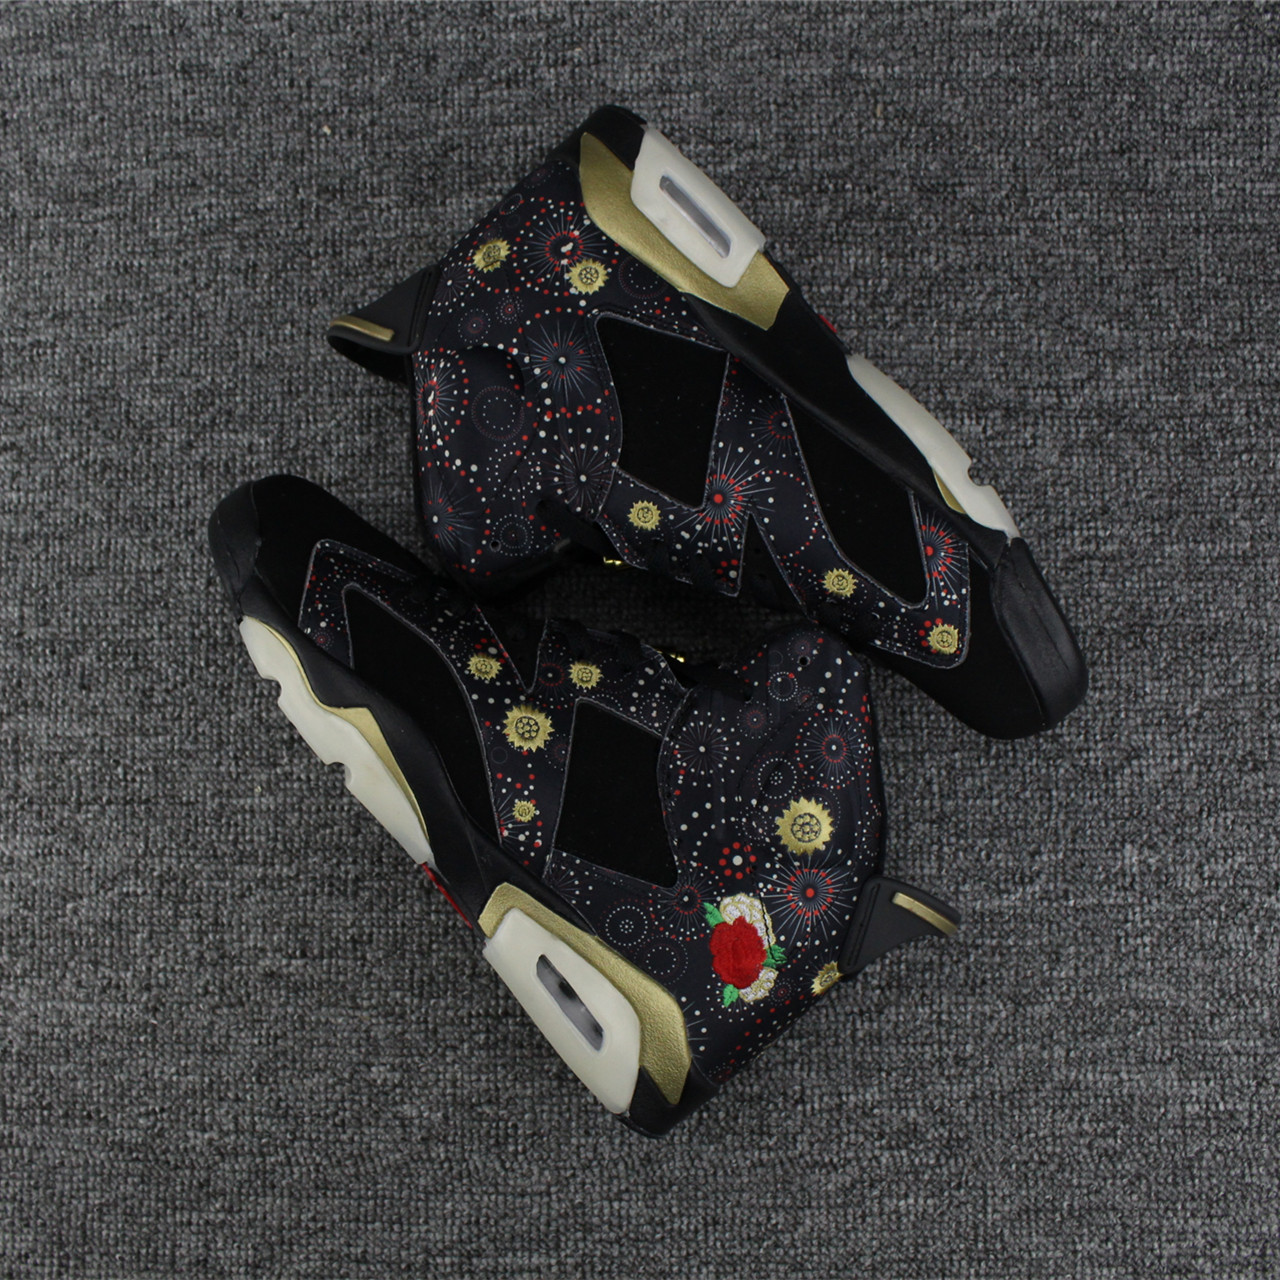 CHeap Air Jordans 6 Chinese New Year Peony Firework Embroidery